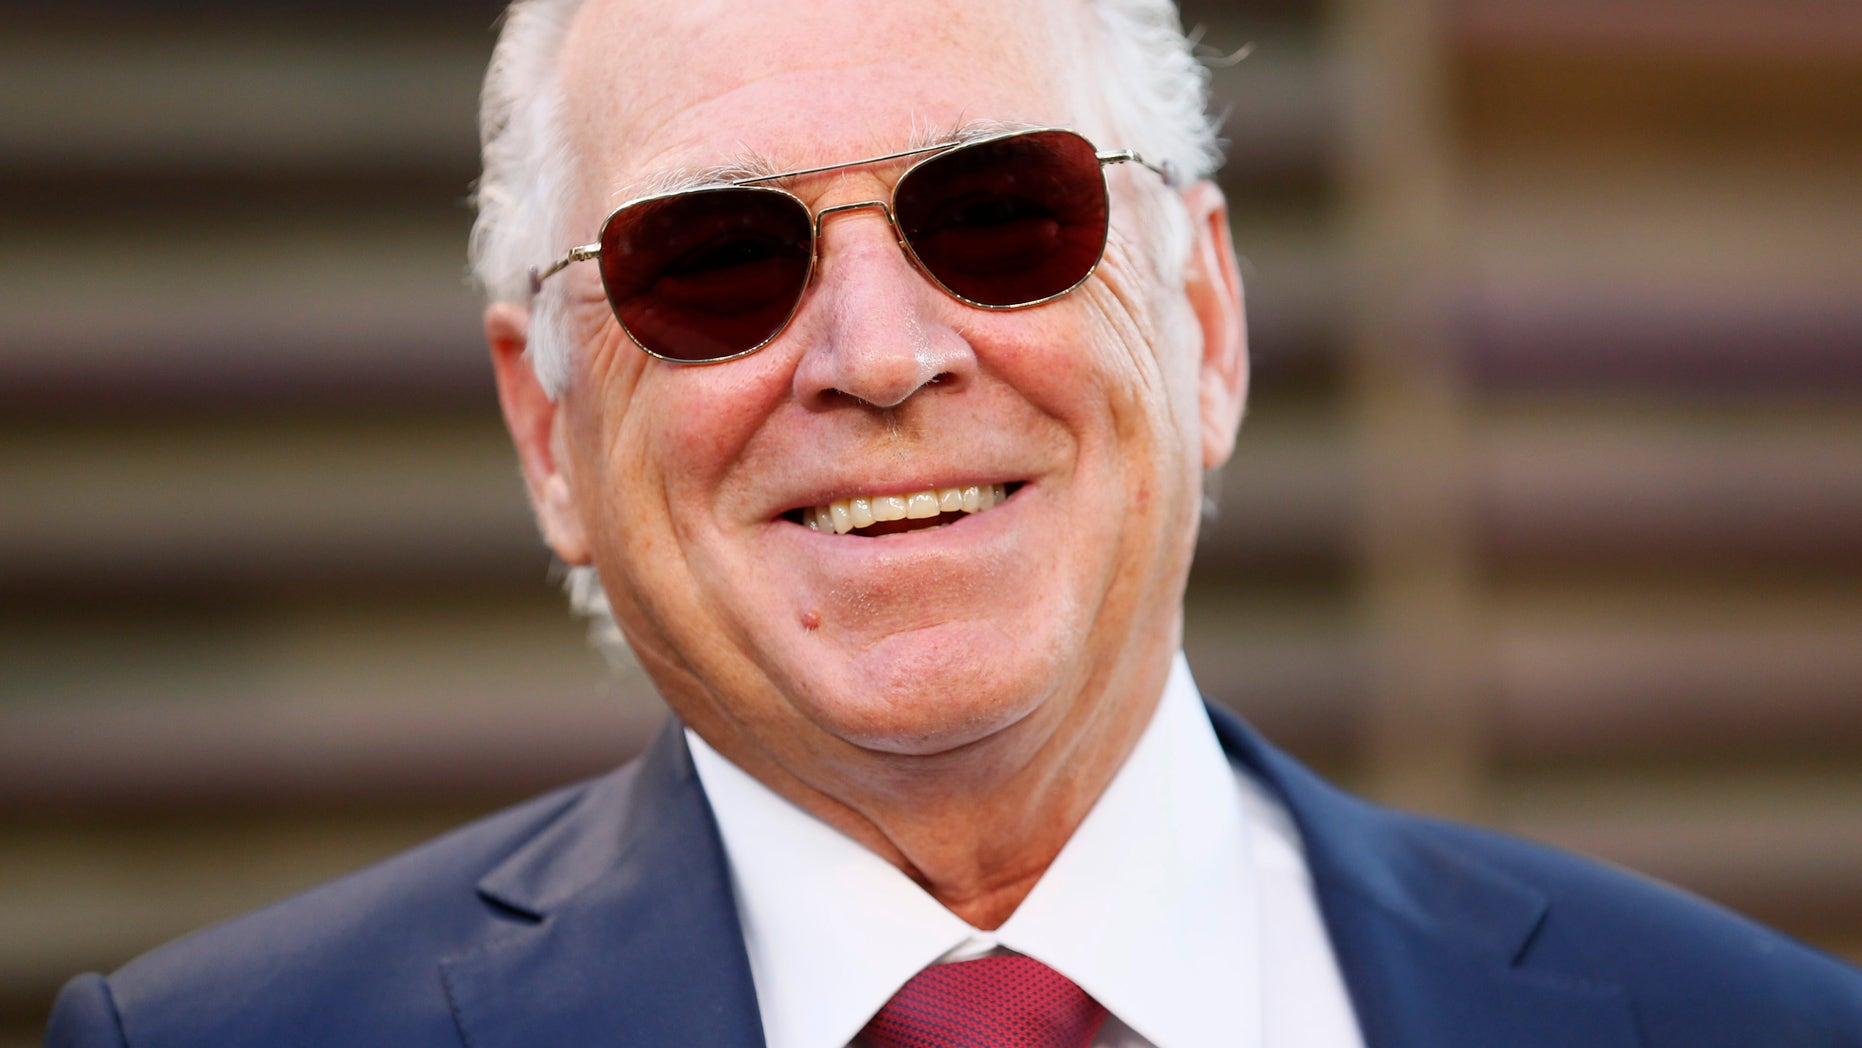 File photo: Musician Jimmy Buffett arrives at the 2014 Vanity Fair Oscars Party in West Hollywood, California March 2, 2014. (REUTERS/Danny Moloshok)